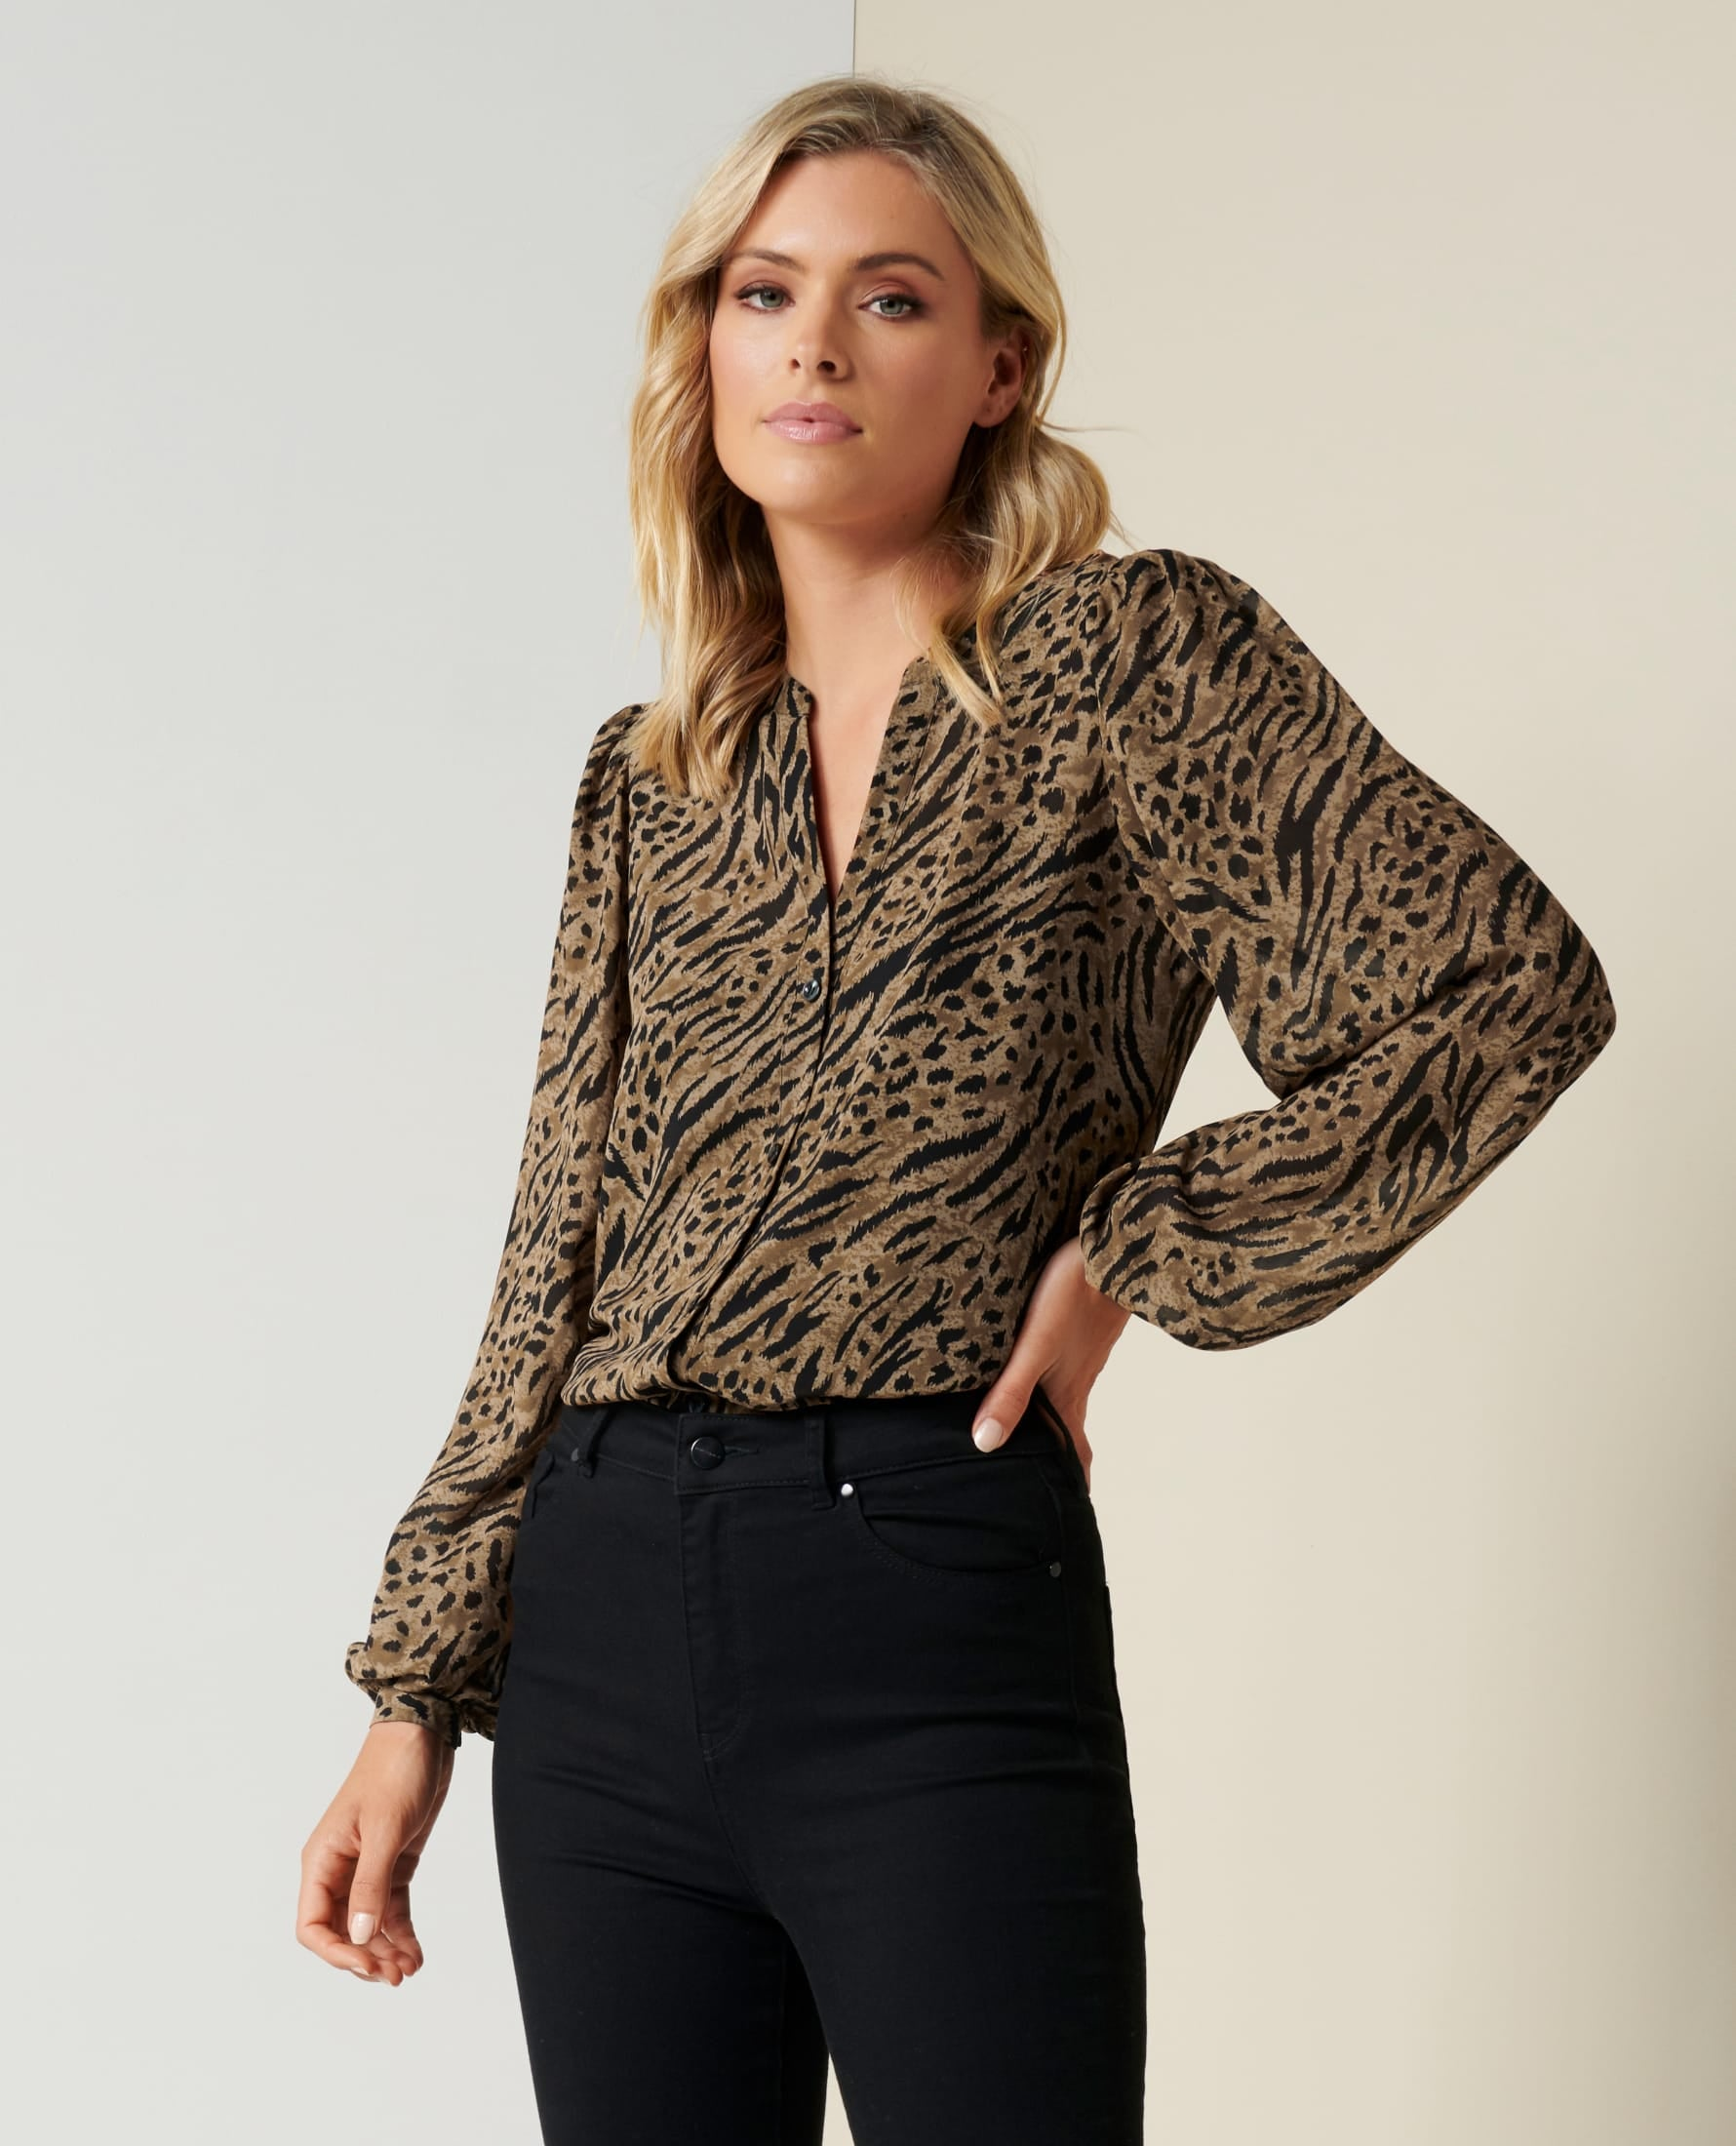 Womens Top   Forever New Clothing